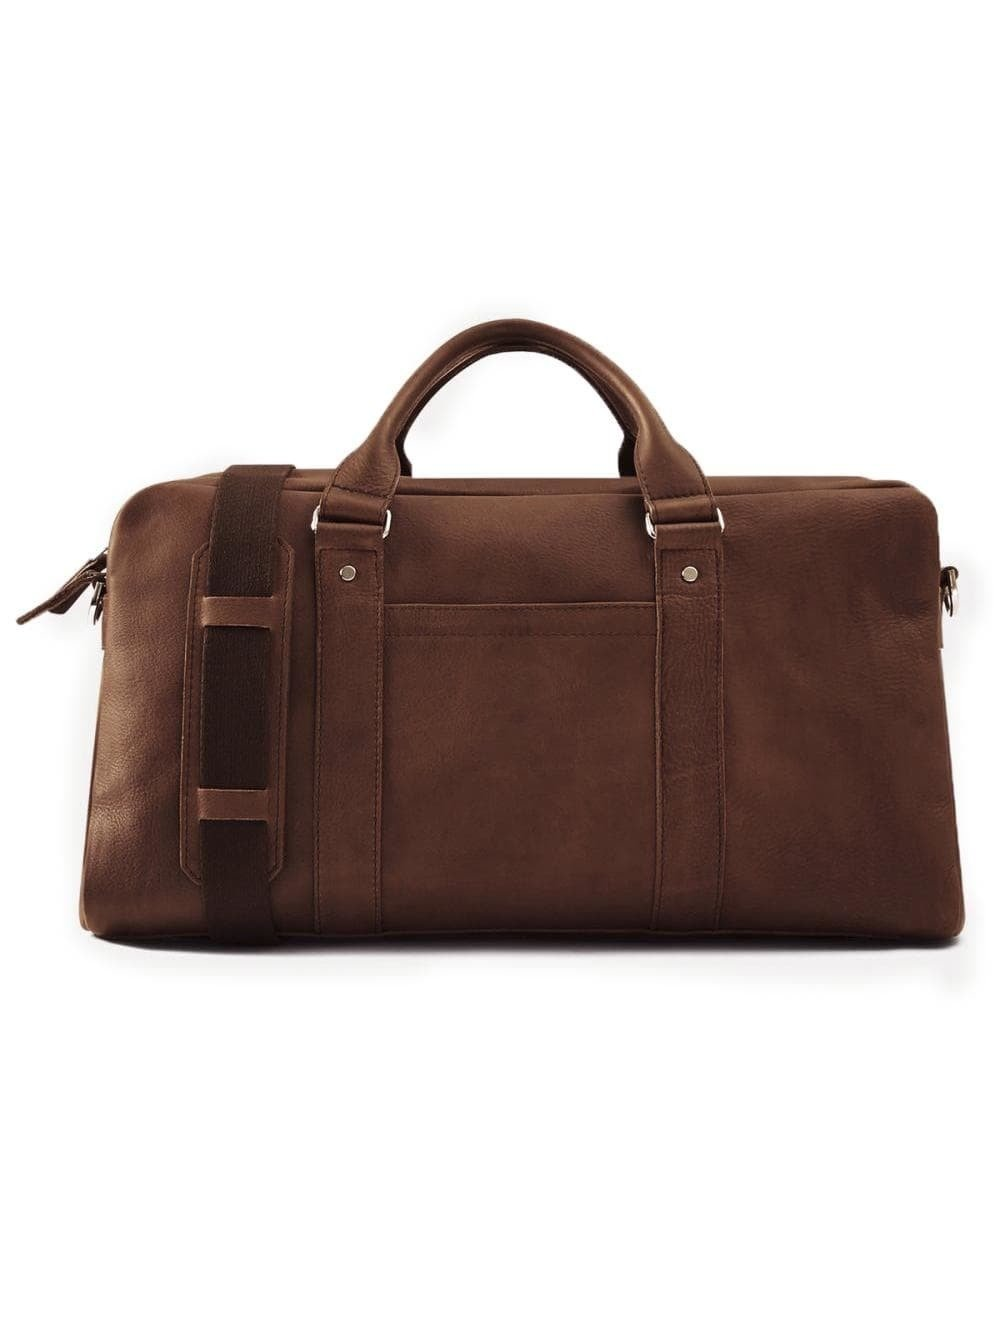 Frank & Oak Italian Leather Weekender ($425)  Photo 23 of 28 in PSA: Montreal Is Just 6 Hours North of New York (And It's Pretty Great)